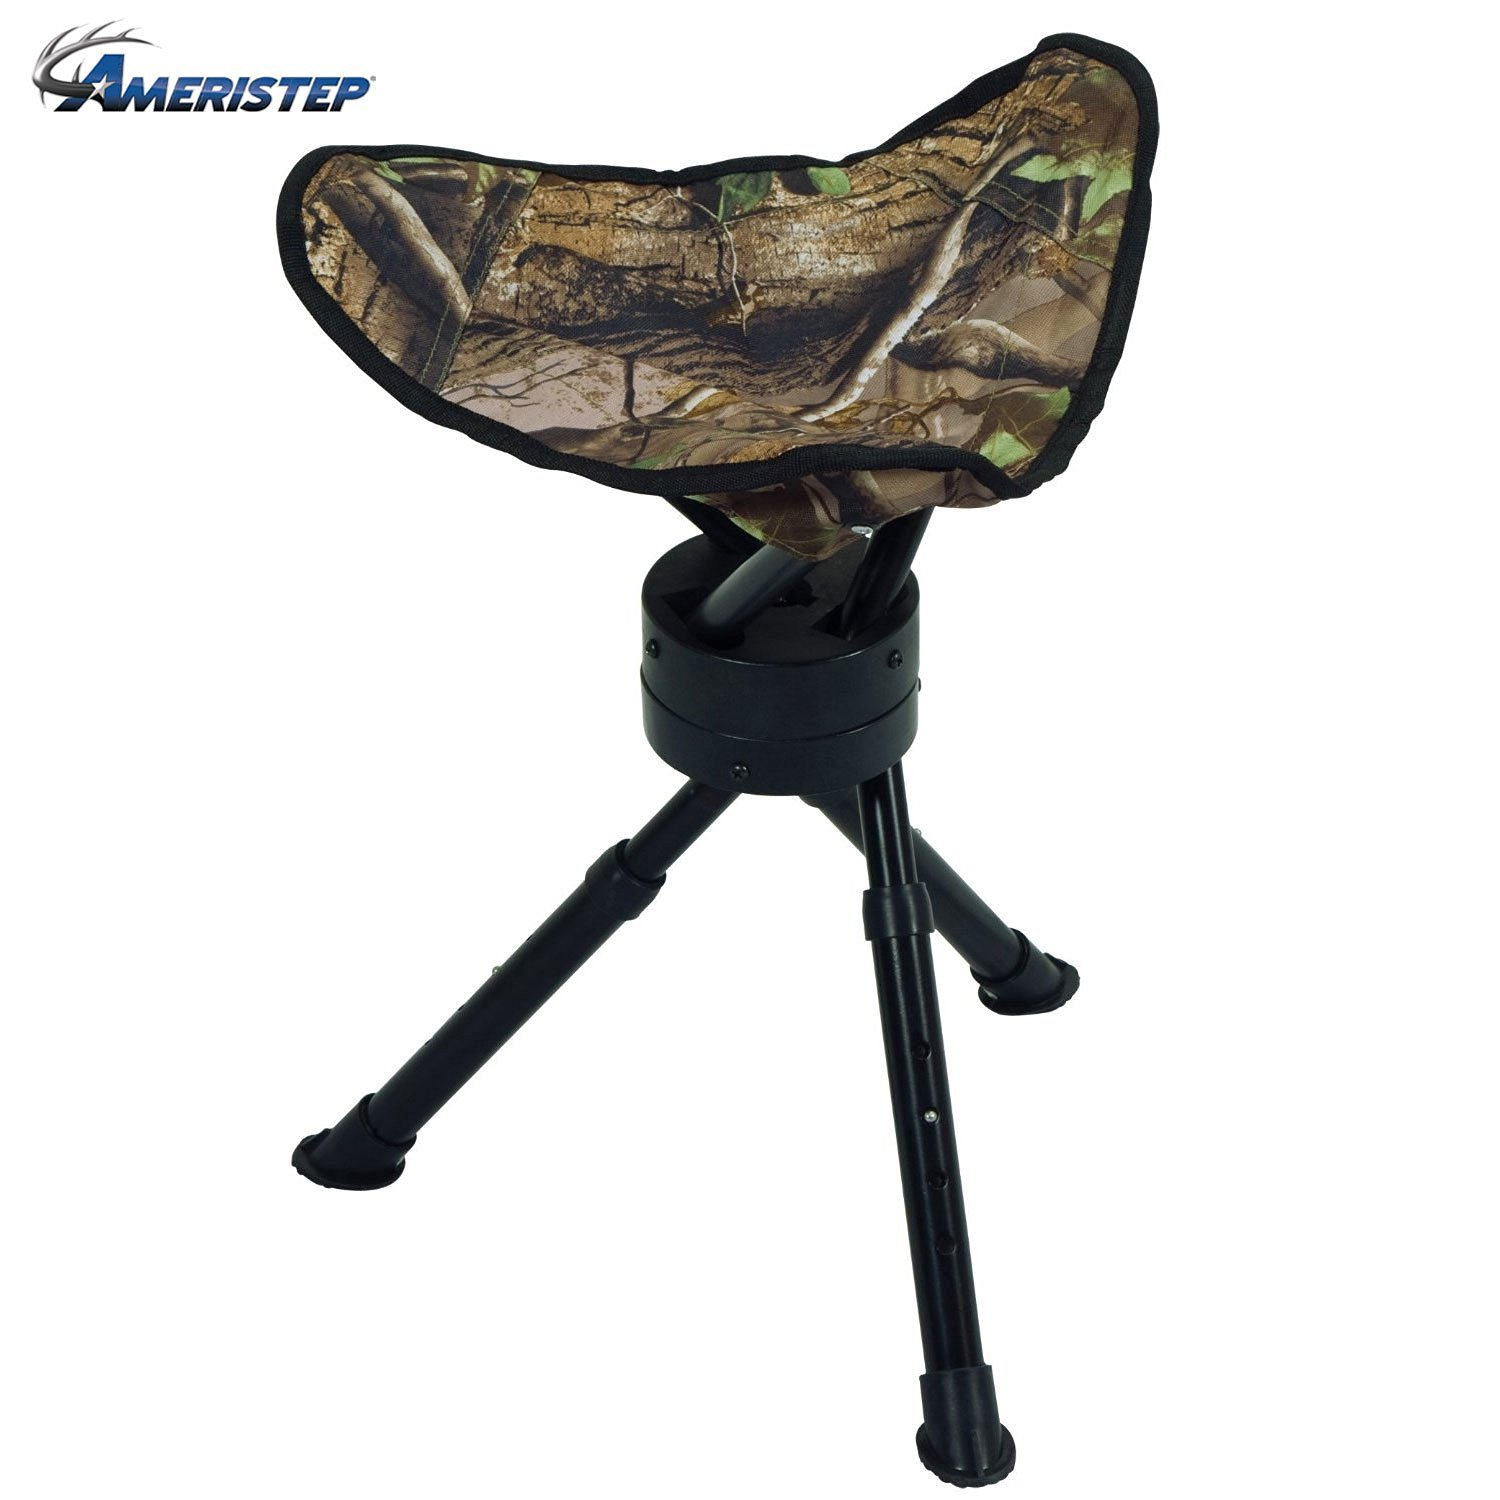 Buy Ameristep Tripod Roof Kit in Cheap Price on Alibaba com